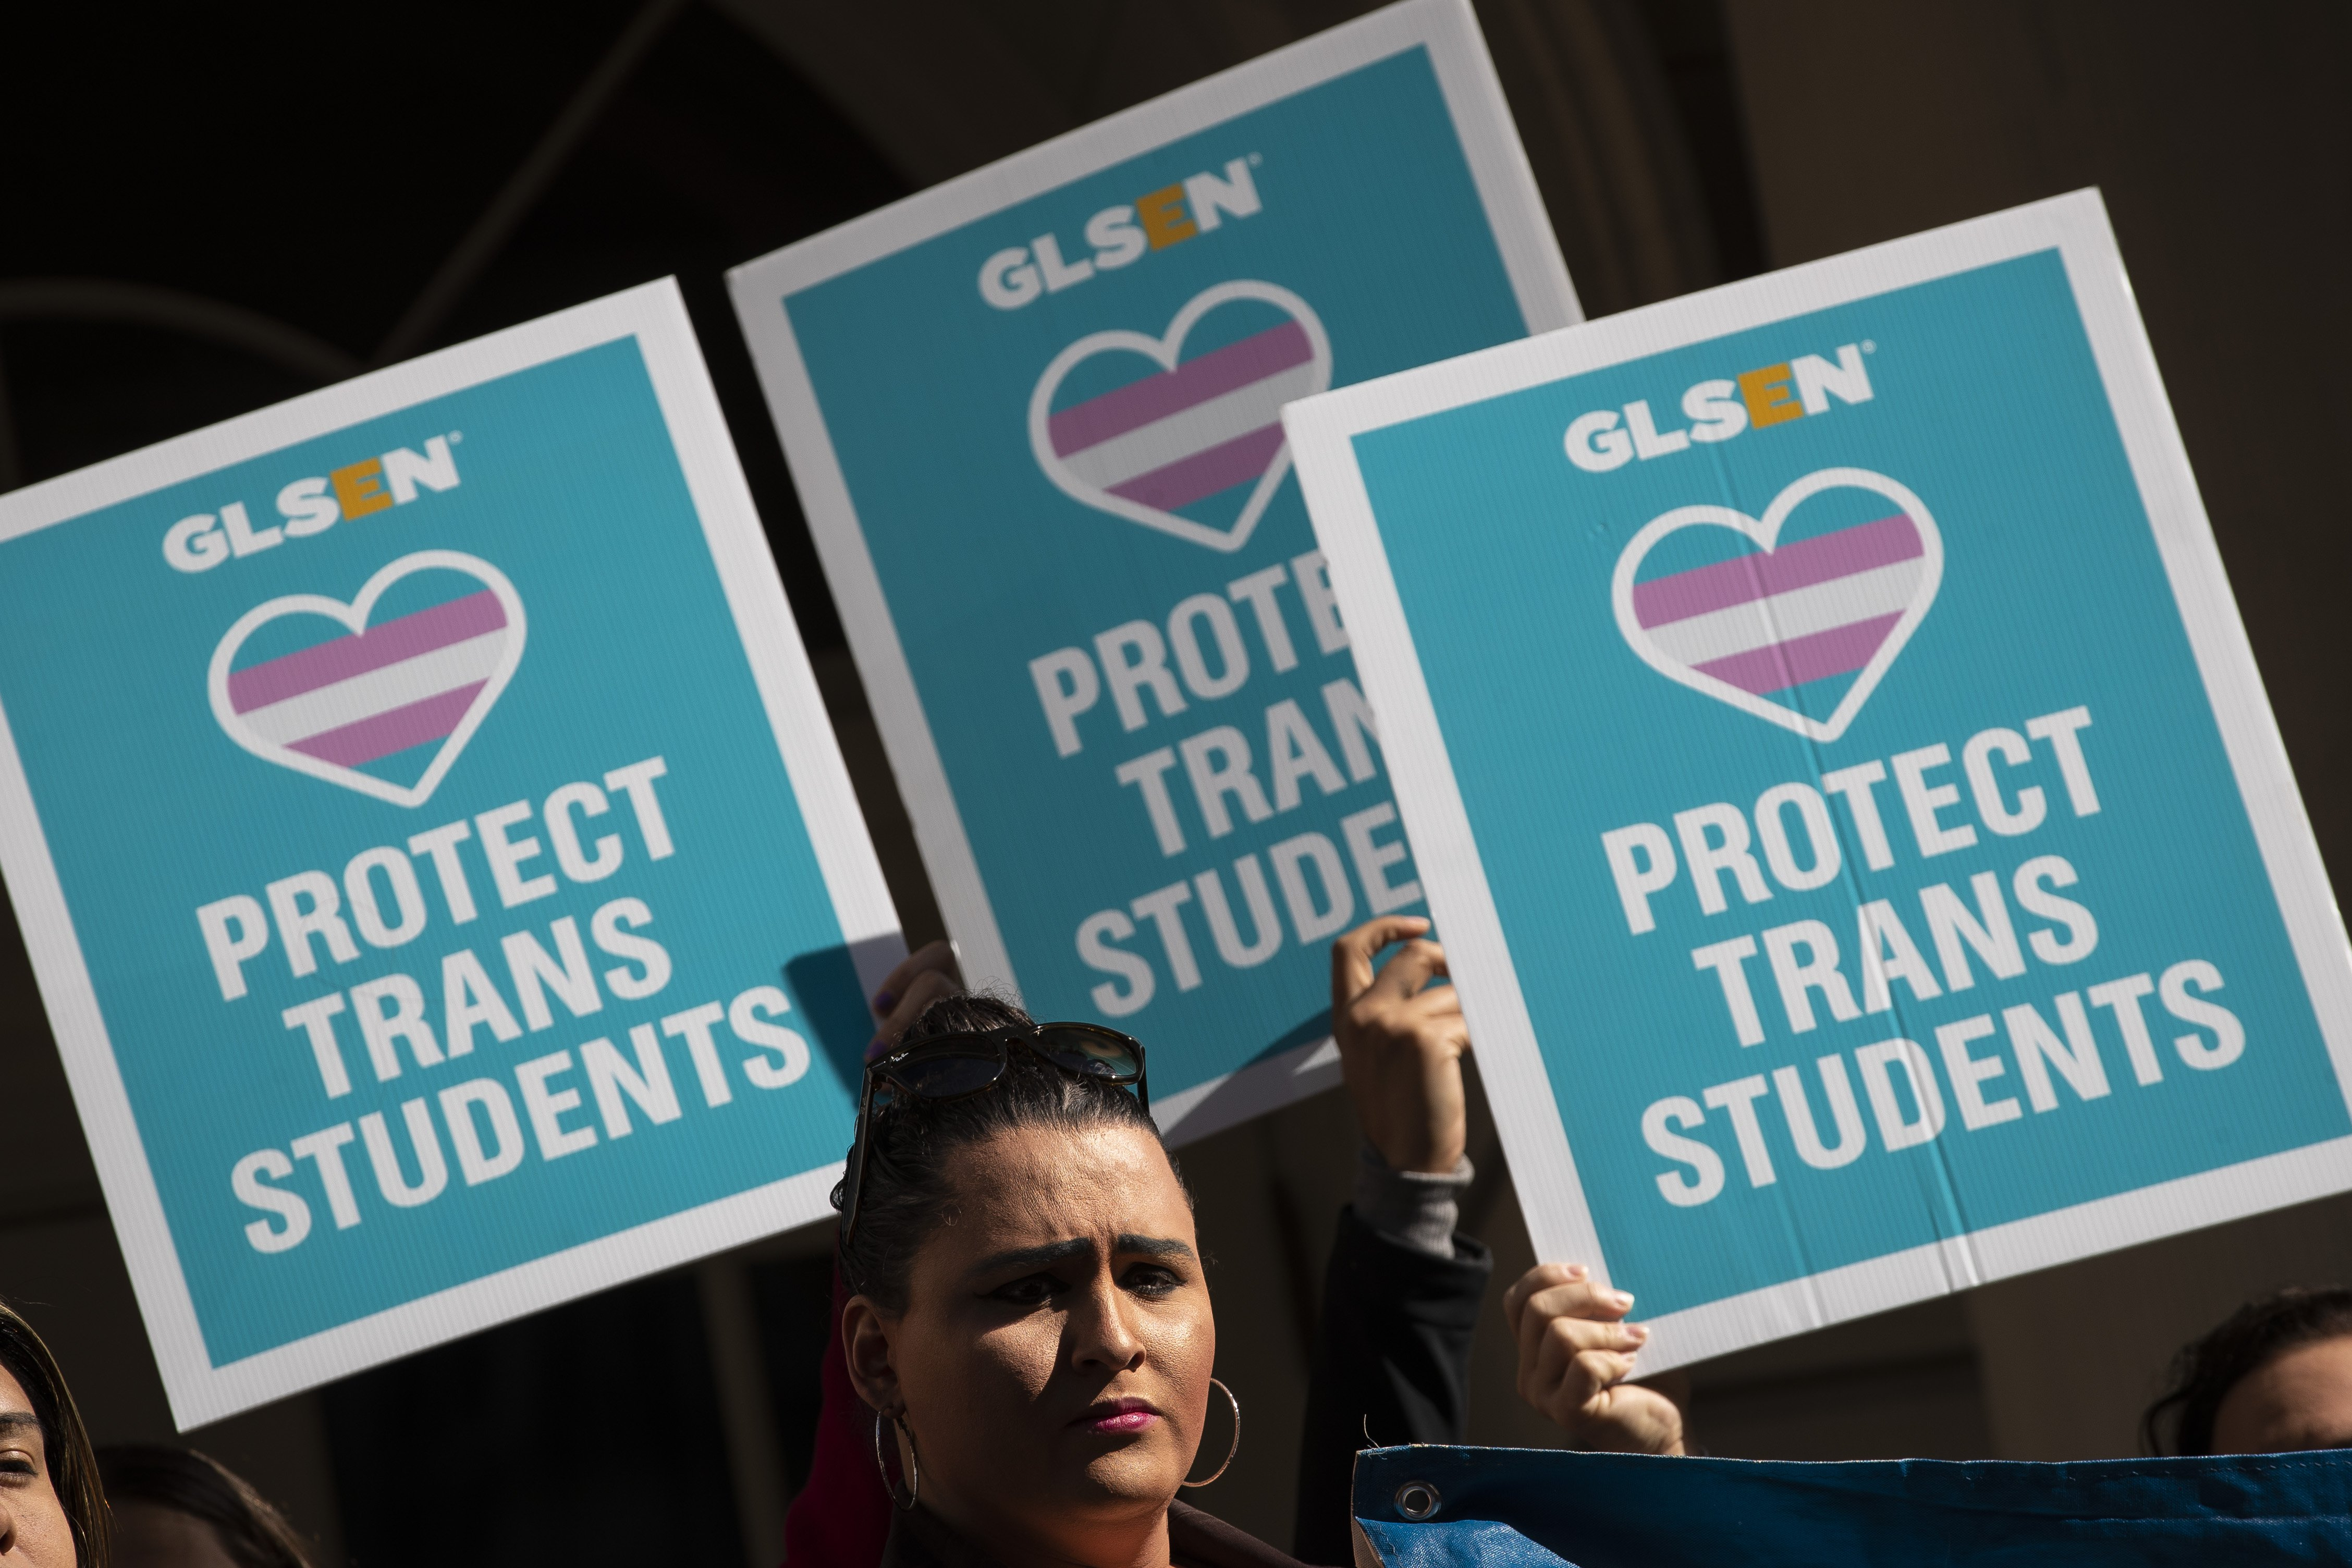 LGTB activists protesting outside New York City Hall   Photo: Getty Images